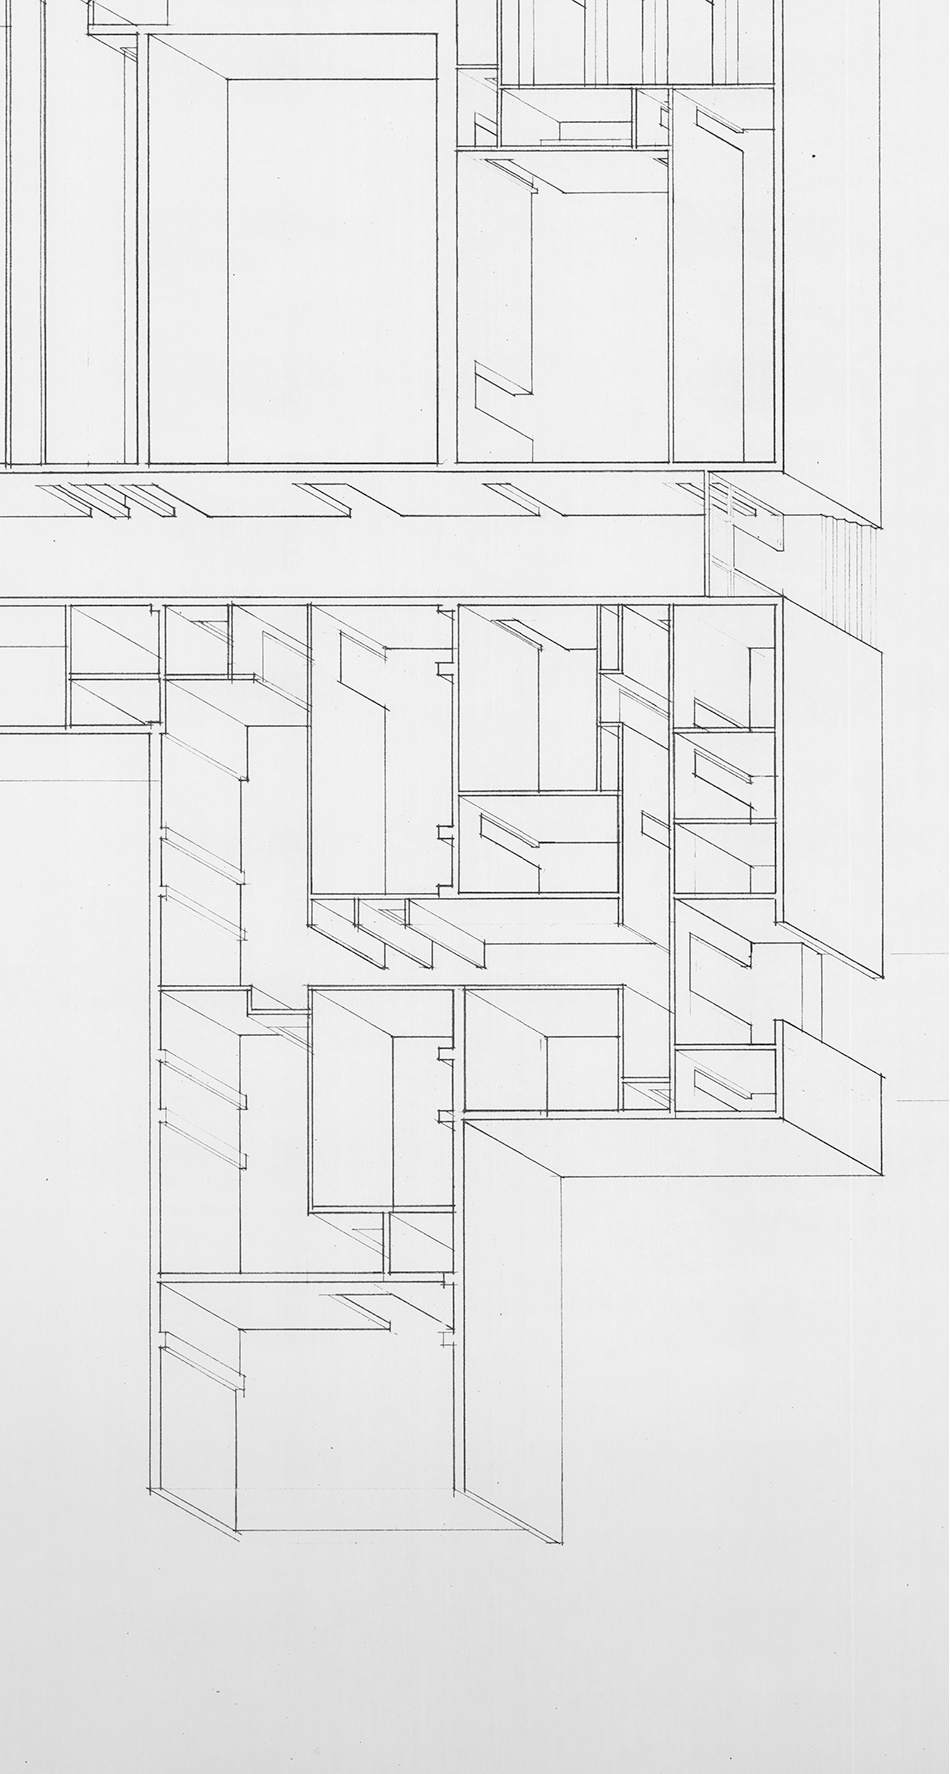 Isometric Drawing in Pencil of Lodge, John Yeon architectural drawings, 1934-1976